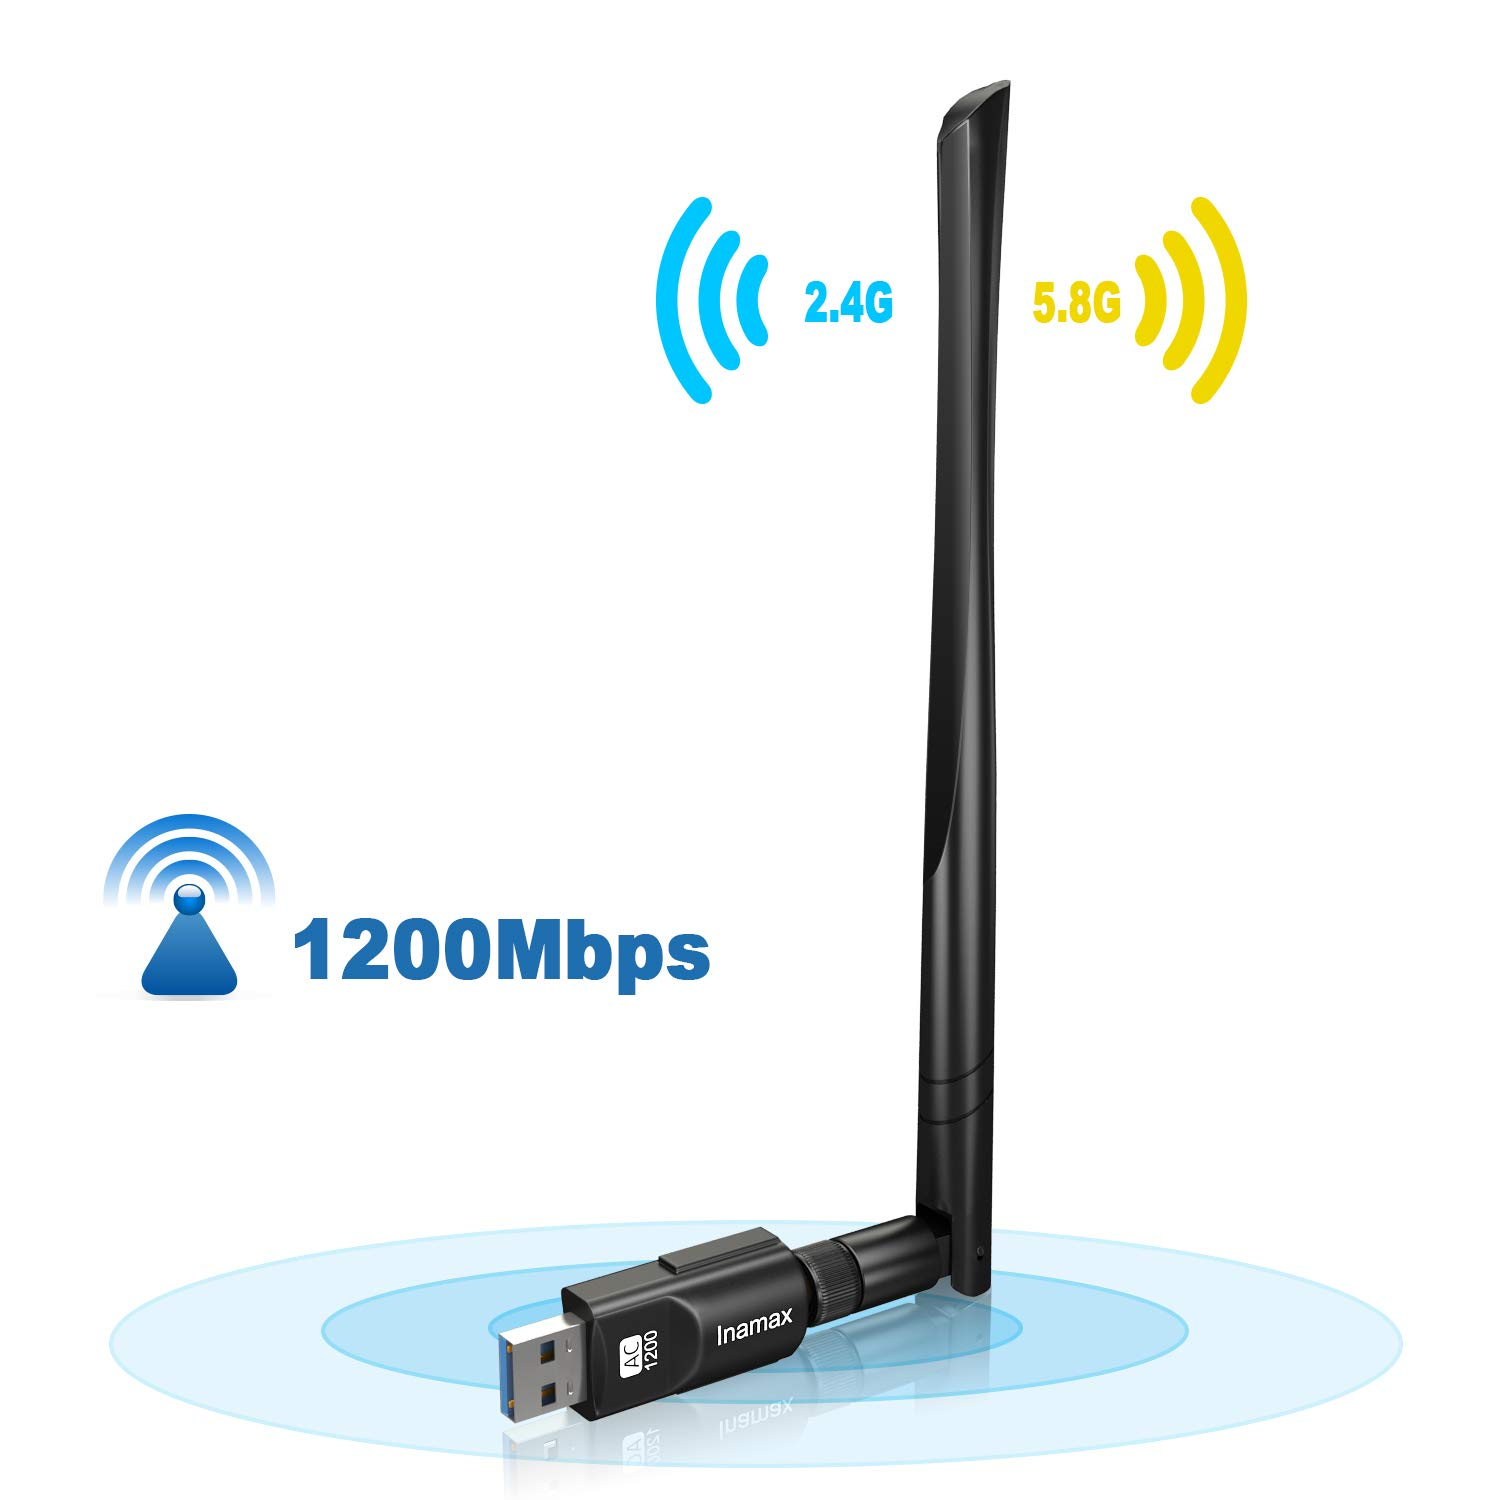 Inamax USB WiFi Adapter 1200Mbps, USB 3.0 Wireless Network WiFi Dongle with 5dBi Antenna for PC/Desktop/Laptop/Mac, Dual Band 2.4G/5G 802.11ac,Support Windows 10/8/8.1/7/Vista/XP, Mac10.5-10.14 by Inamax